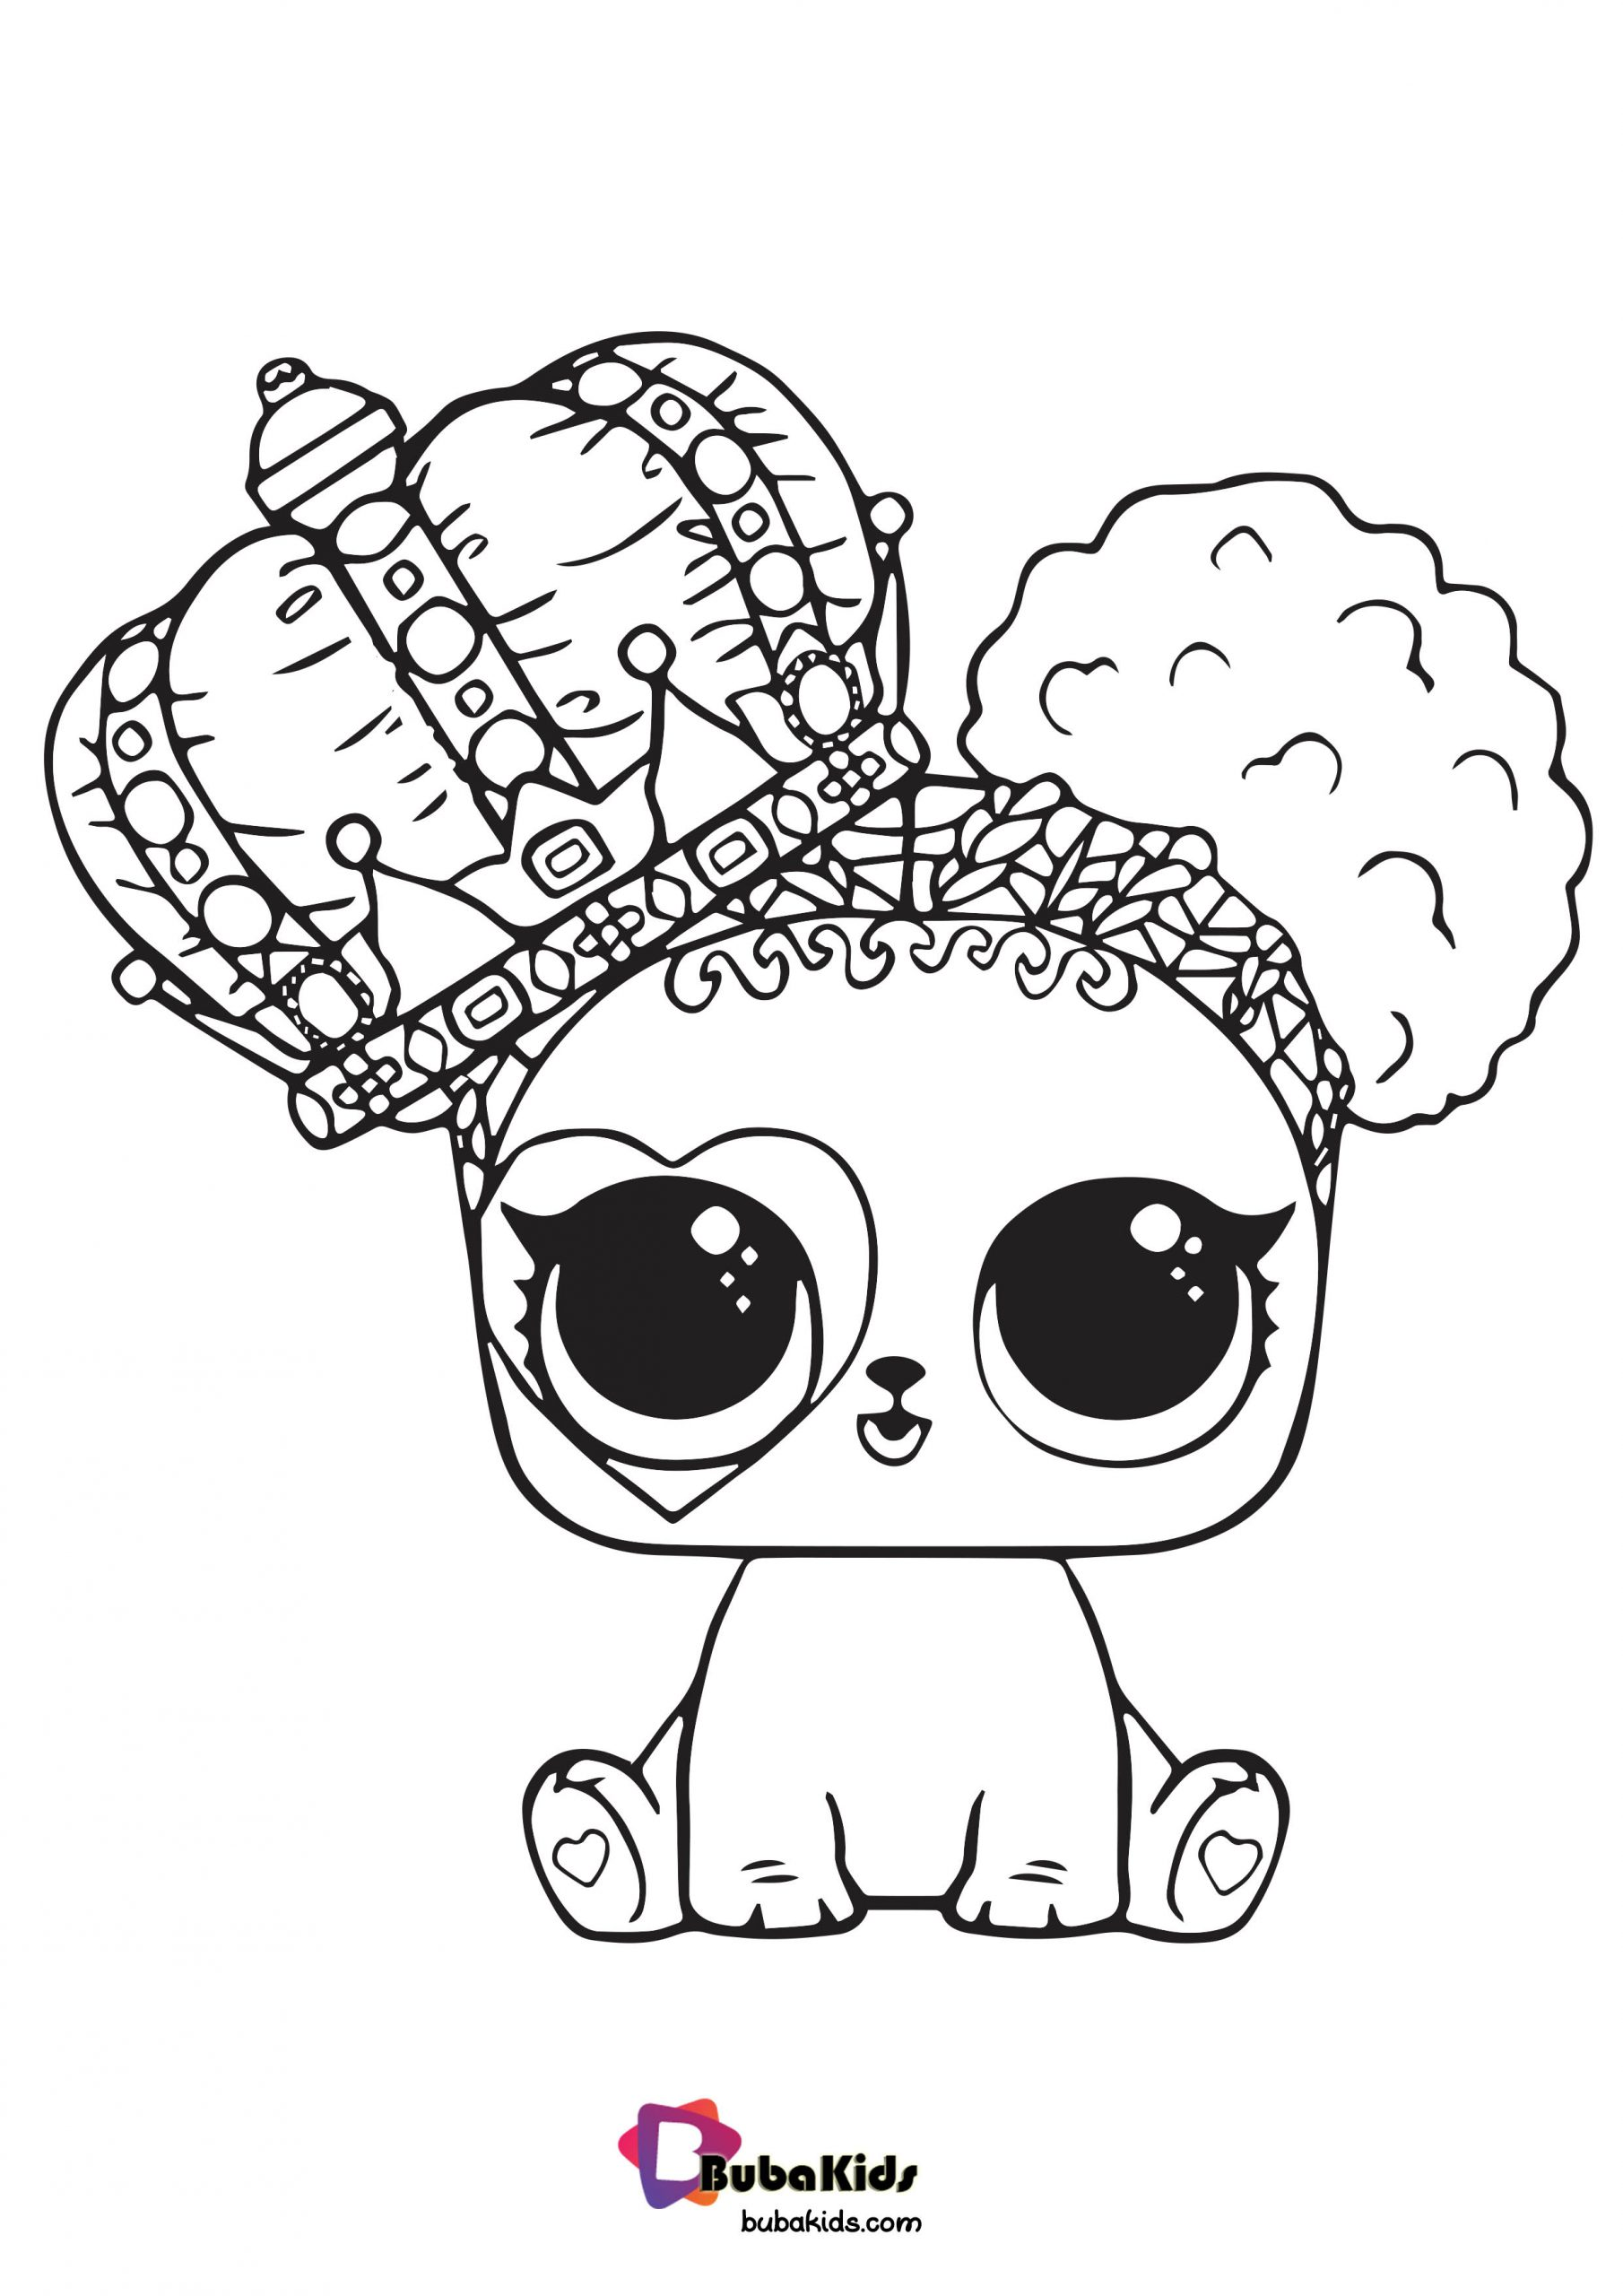 Cute LOL Pet Coloring Page For Girls in HD Resolution ...